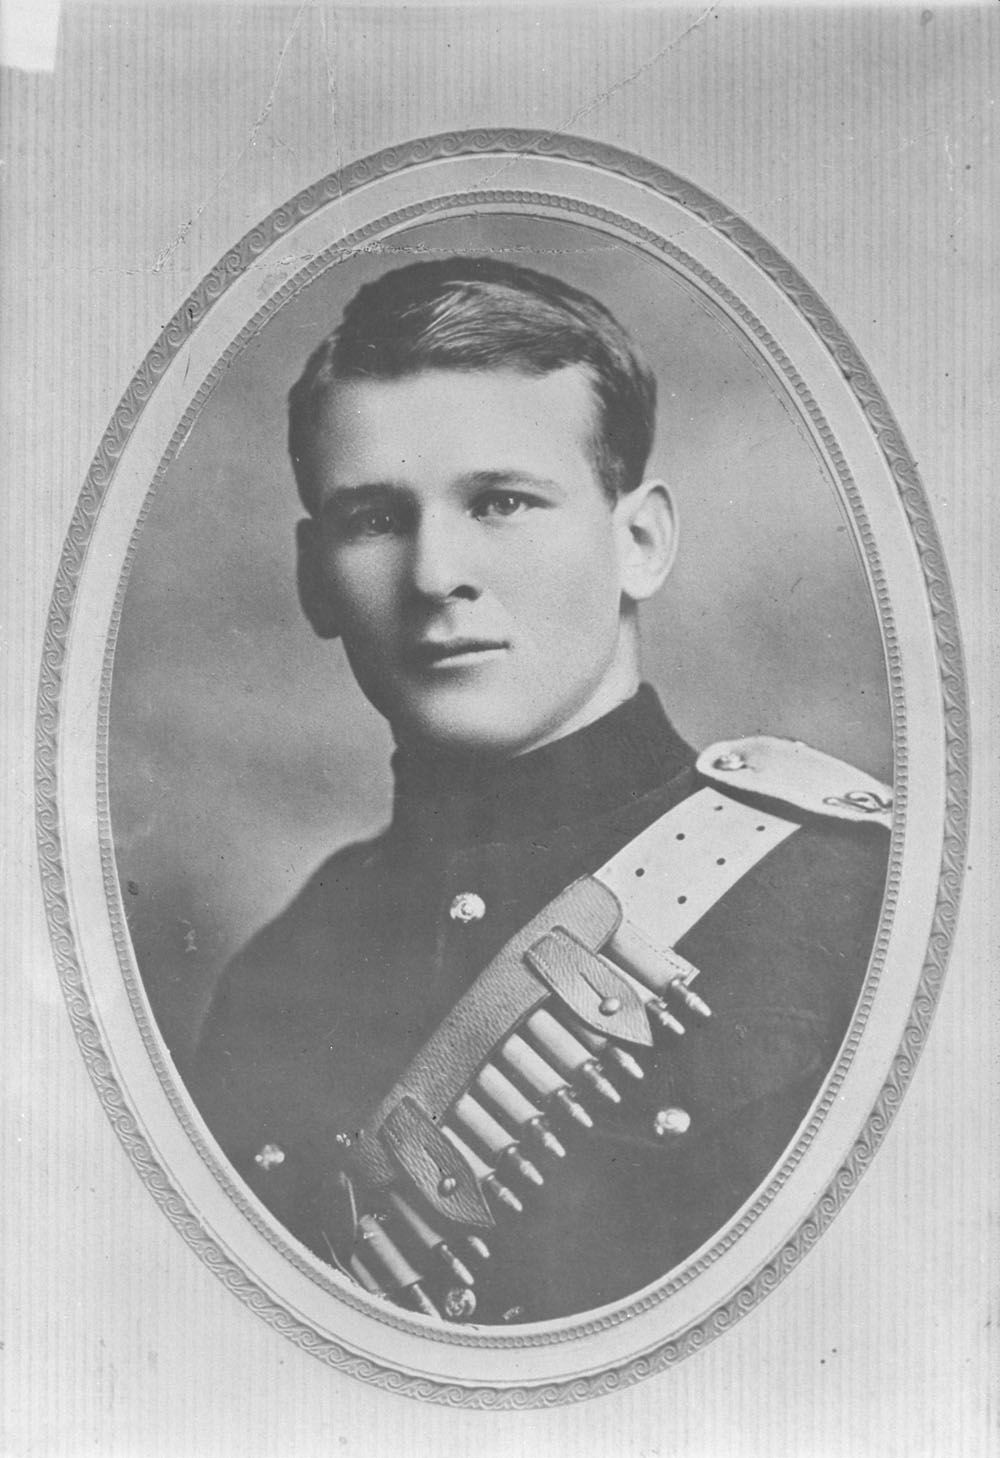 A black-and-white bust photograph of a soldier wearing a light coloured non-commissioned officer (NCO) belt with bullets across his chest.